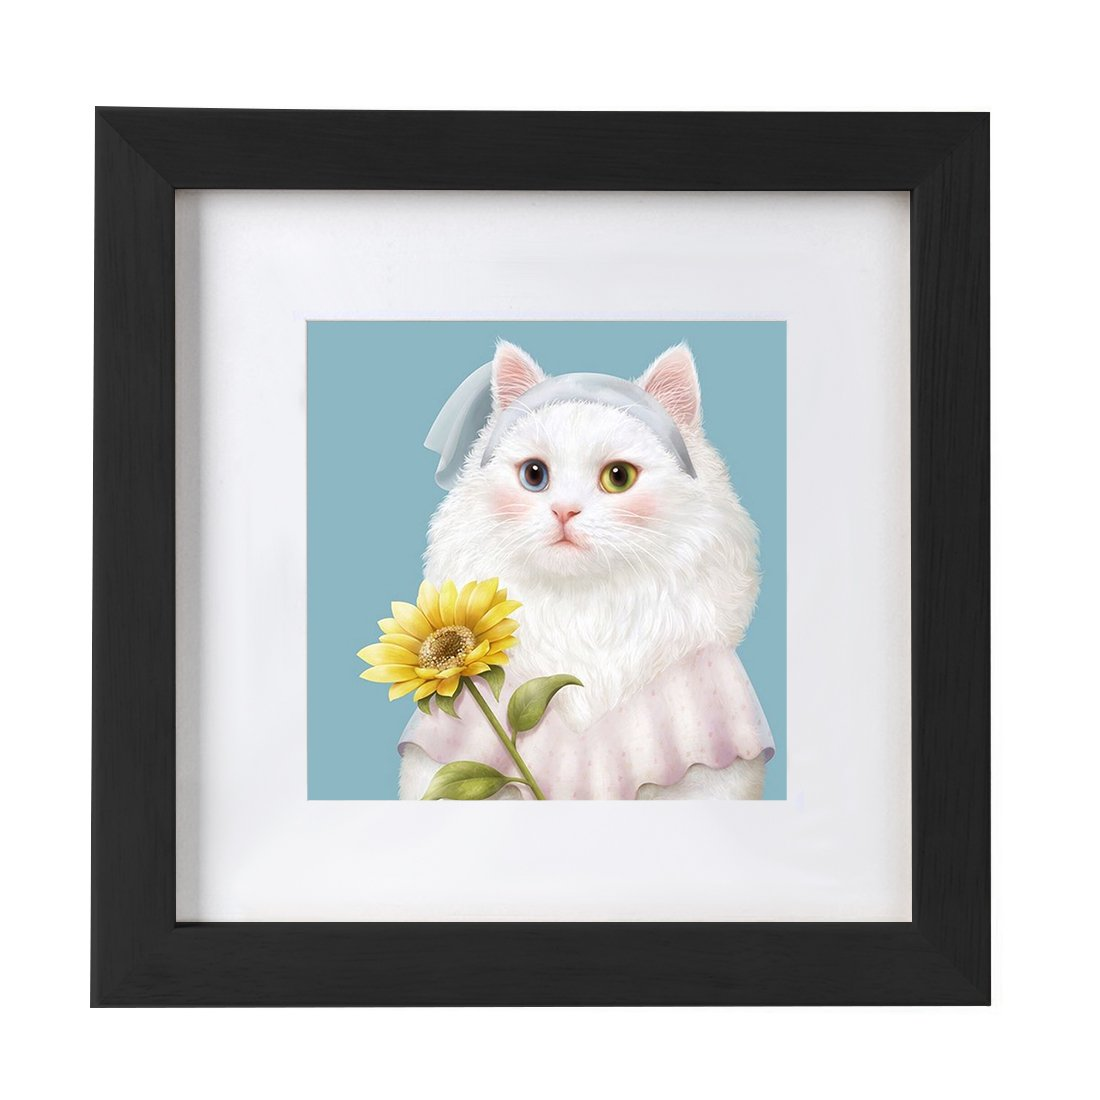 14x14 Black Picture Frames Matted to 8x8 Wooden Square Photo Frames for Wall Hanging by BOJIN